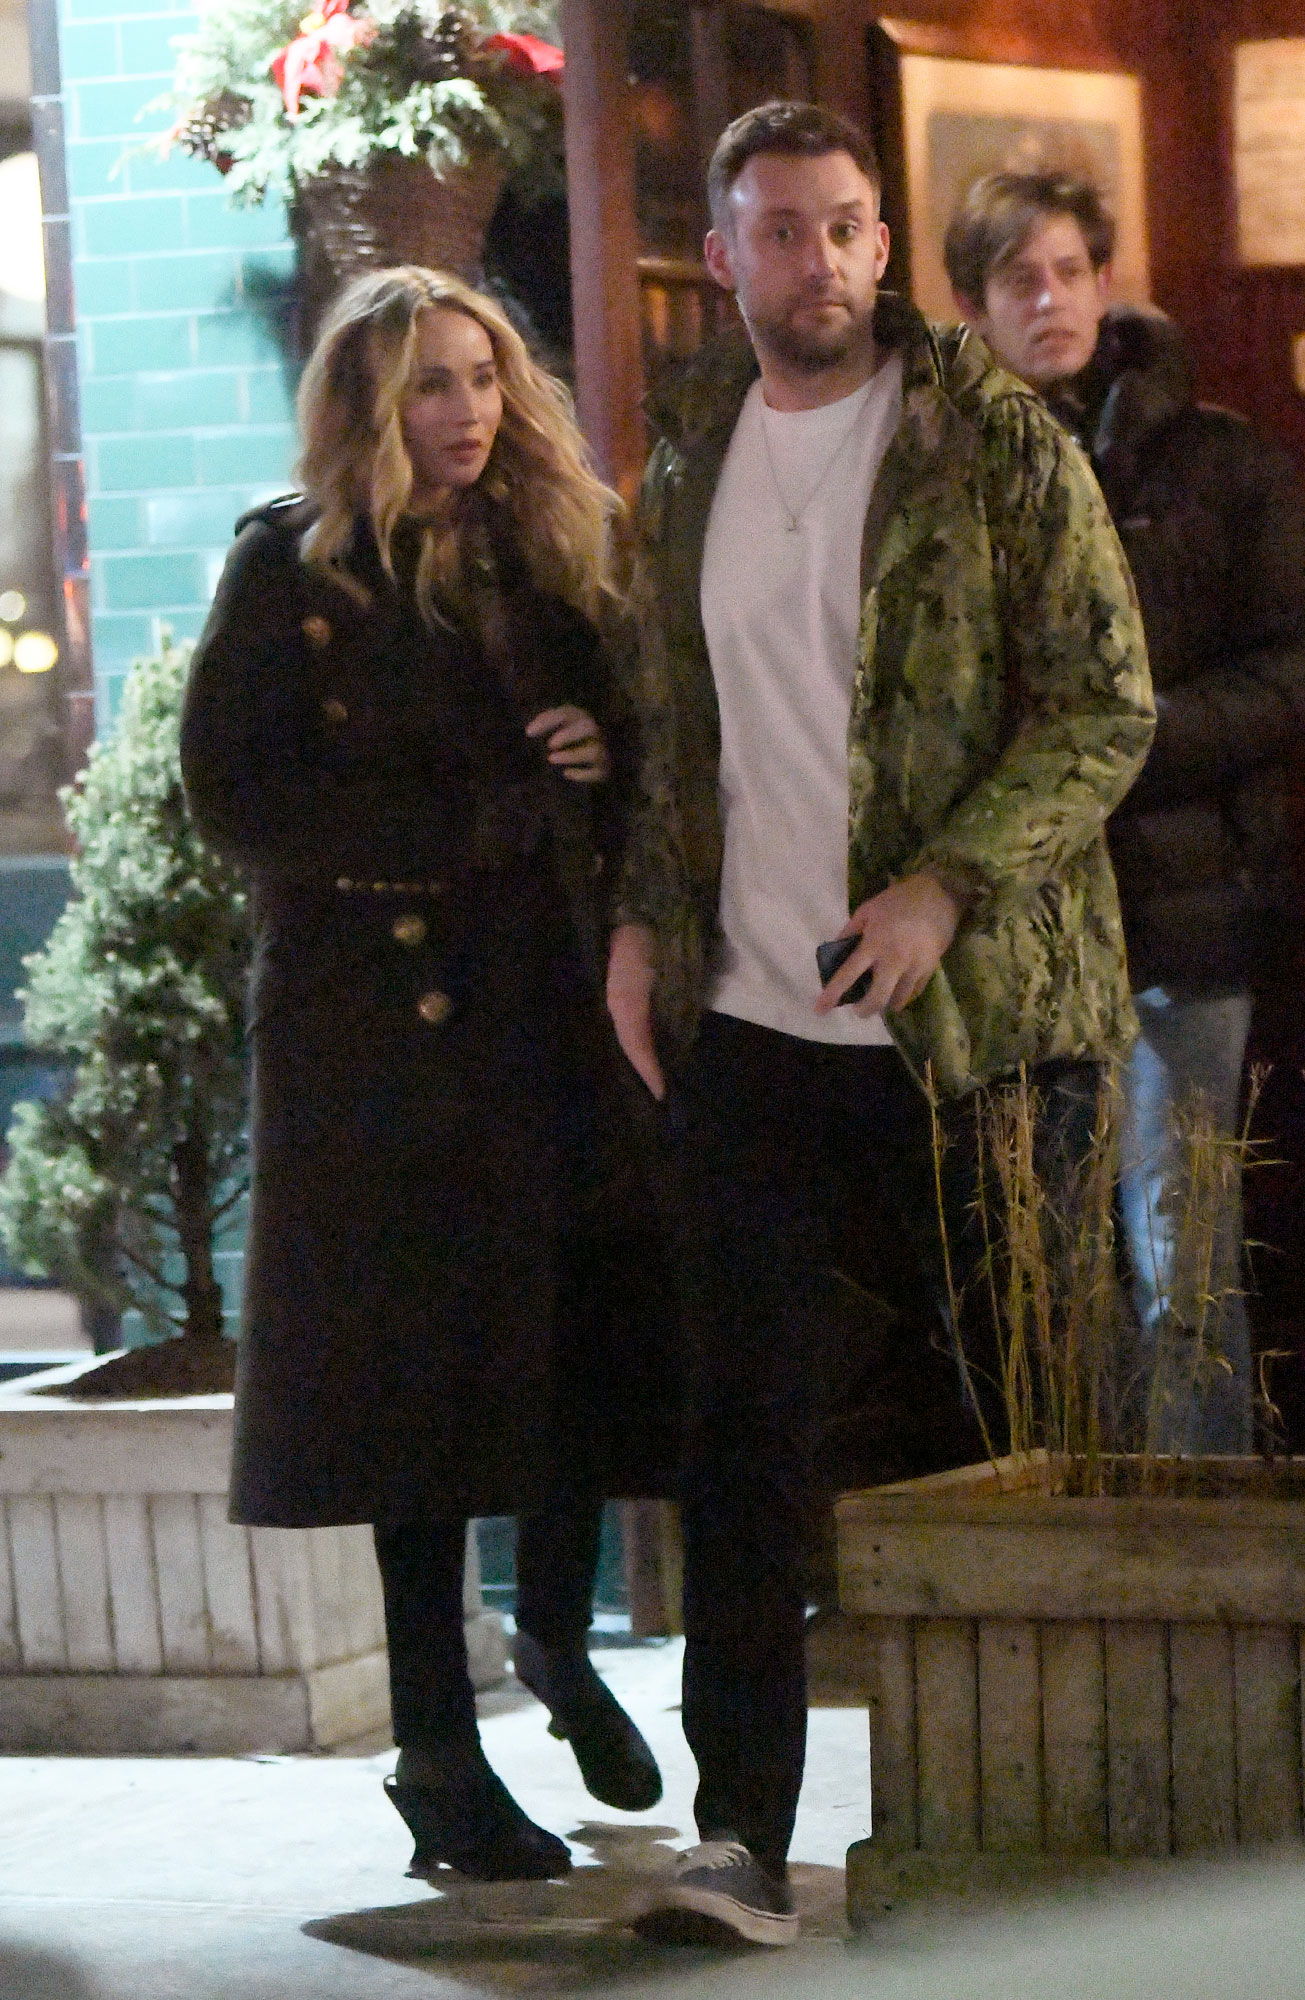 Jennifer Lawrence takes her beau out for dinner tonight in New York City